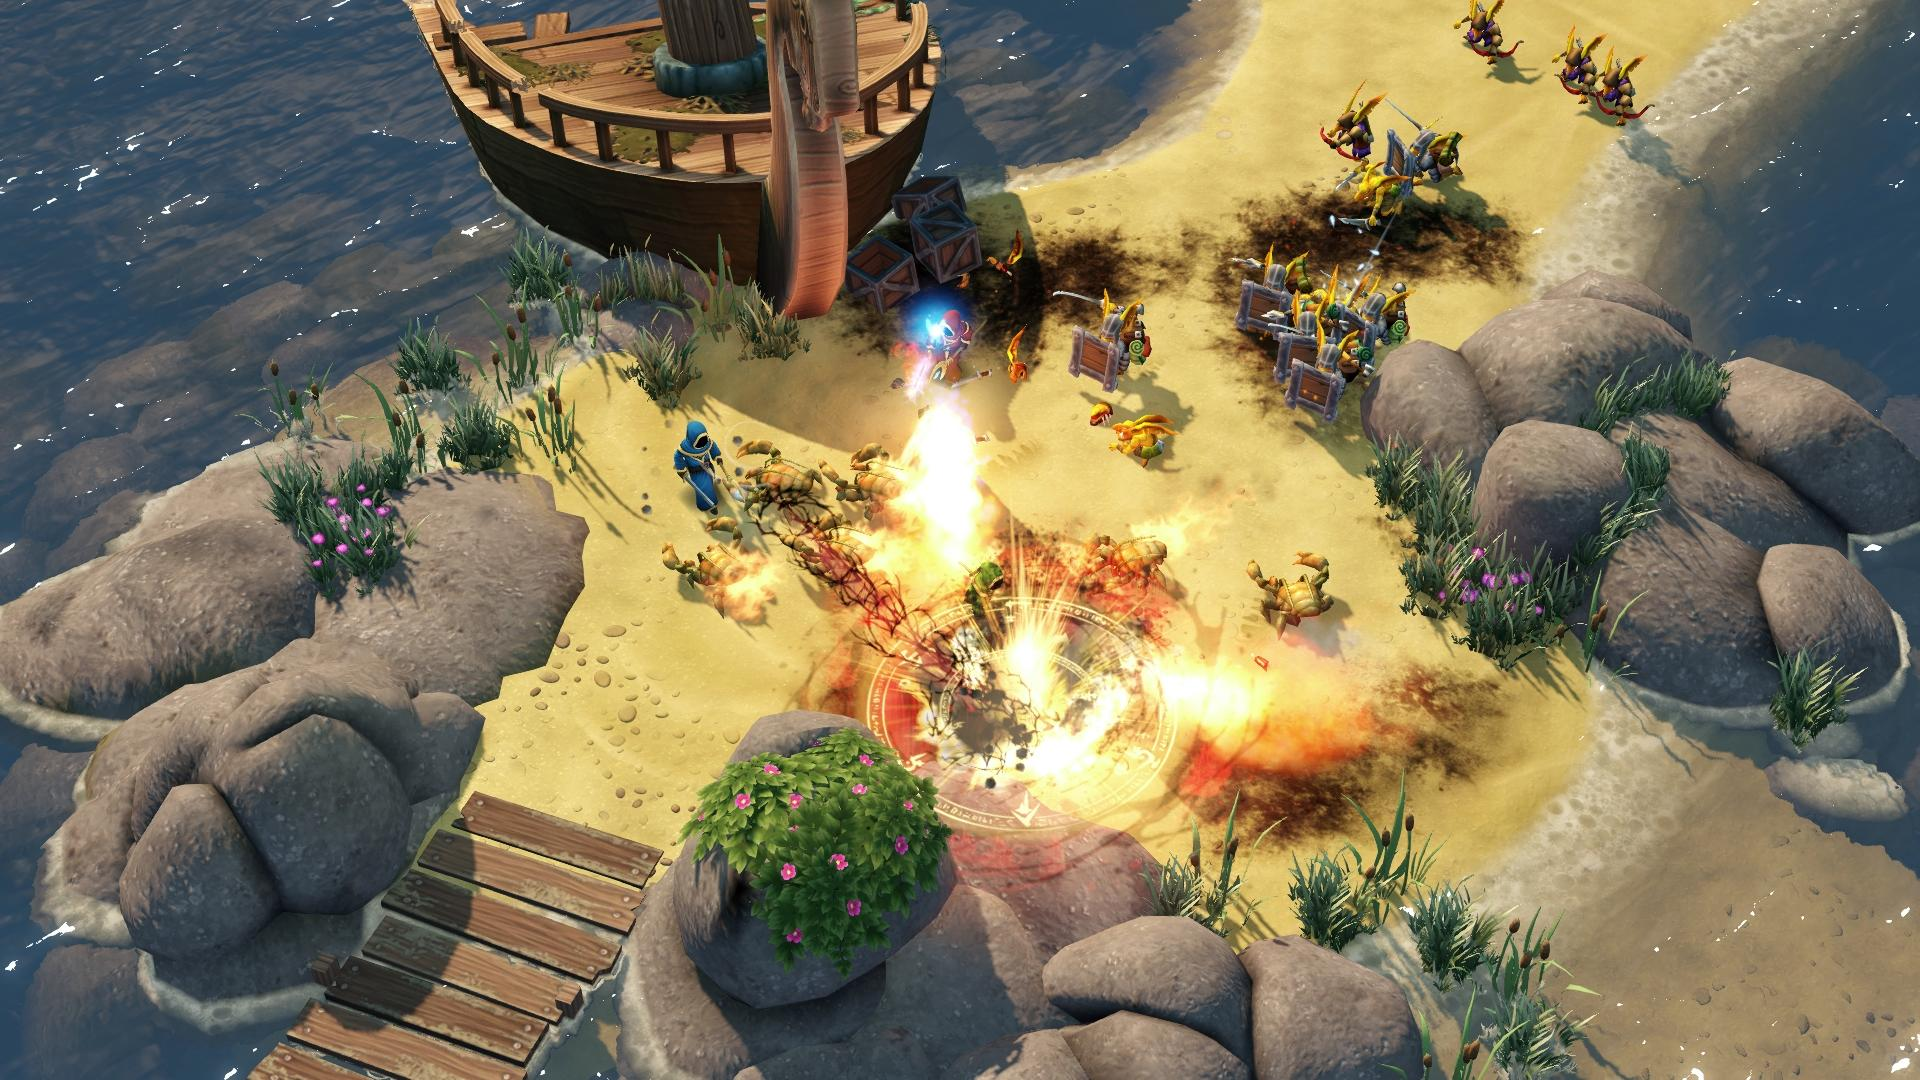 Helldivers / Magicka devs working on third-person online game